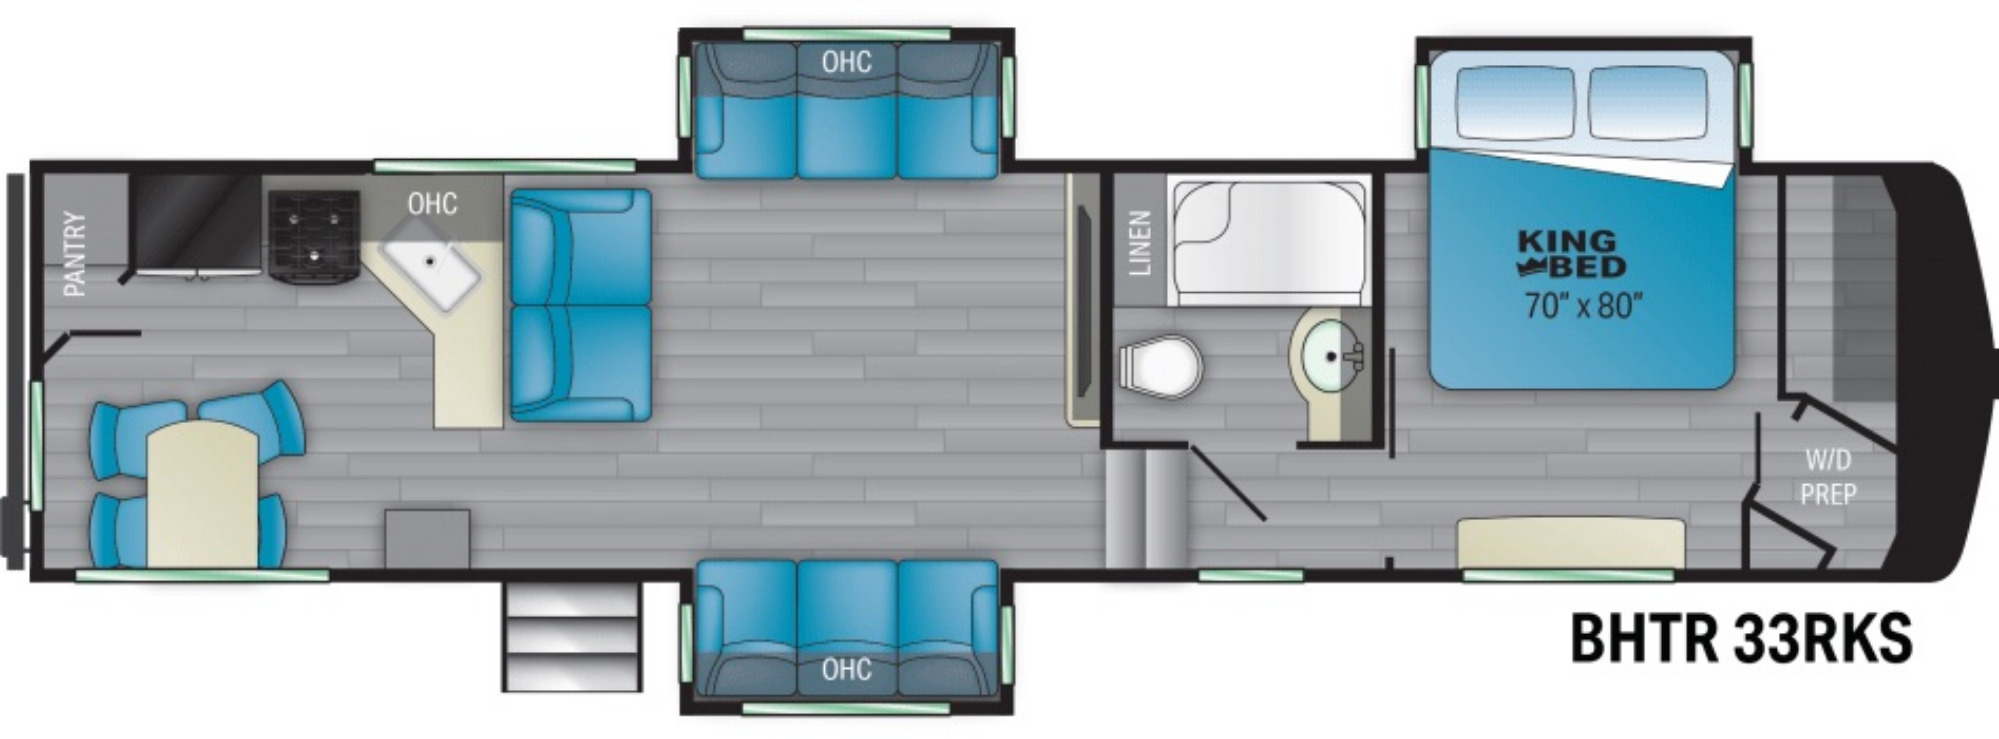 View Floor Plan for 2021 HEARTLAND BIGHORN TRAVELER 33RK